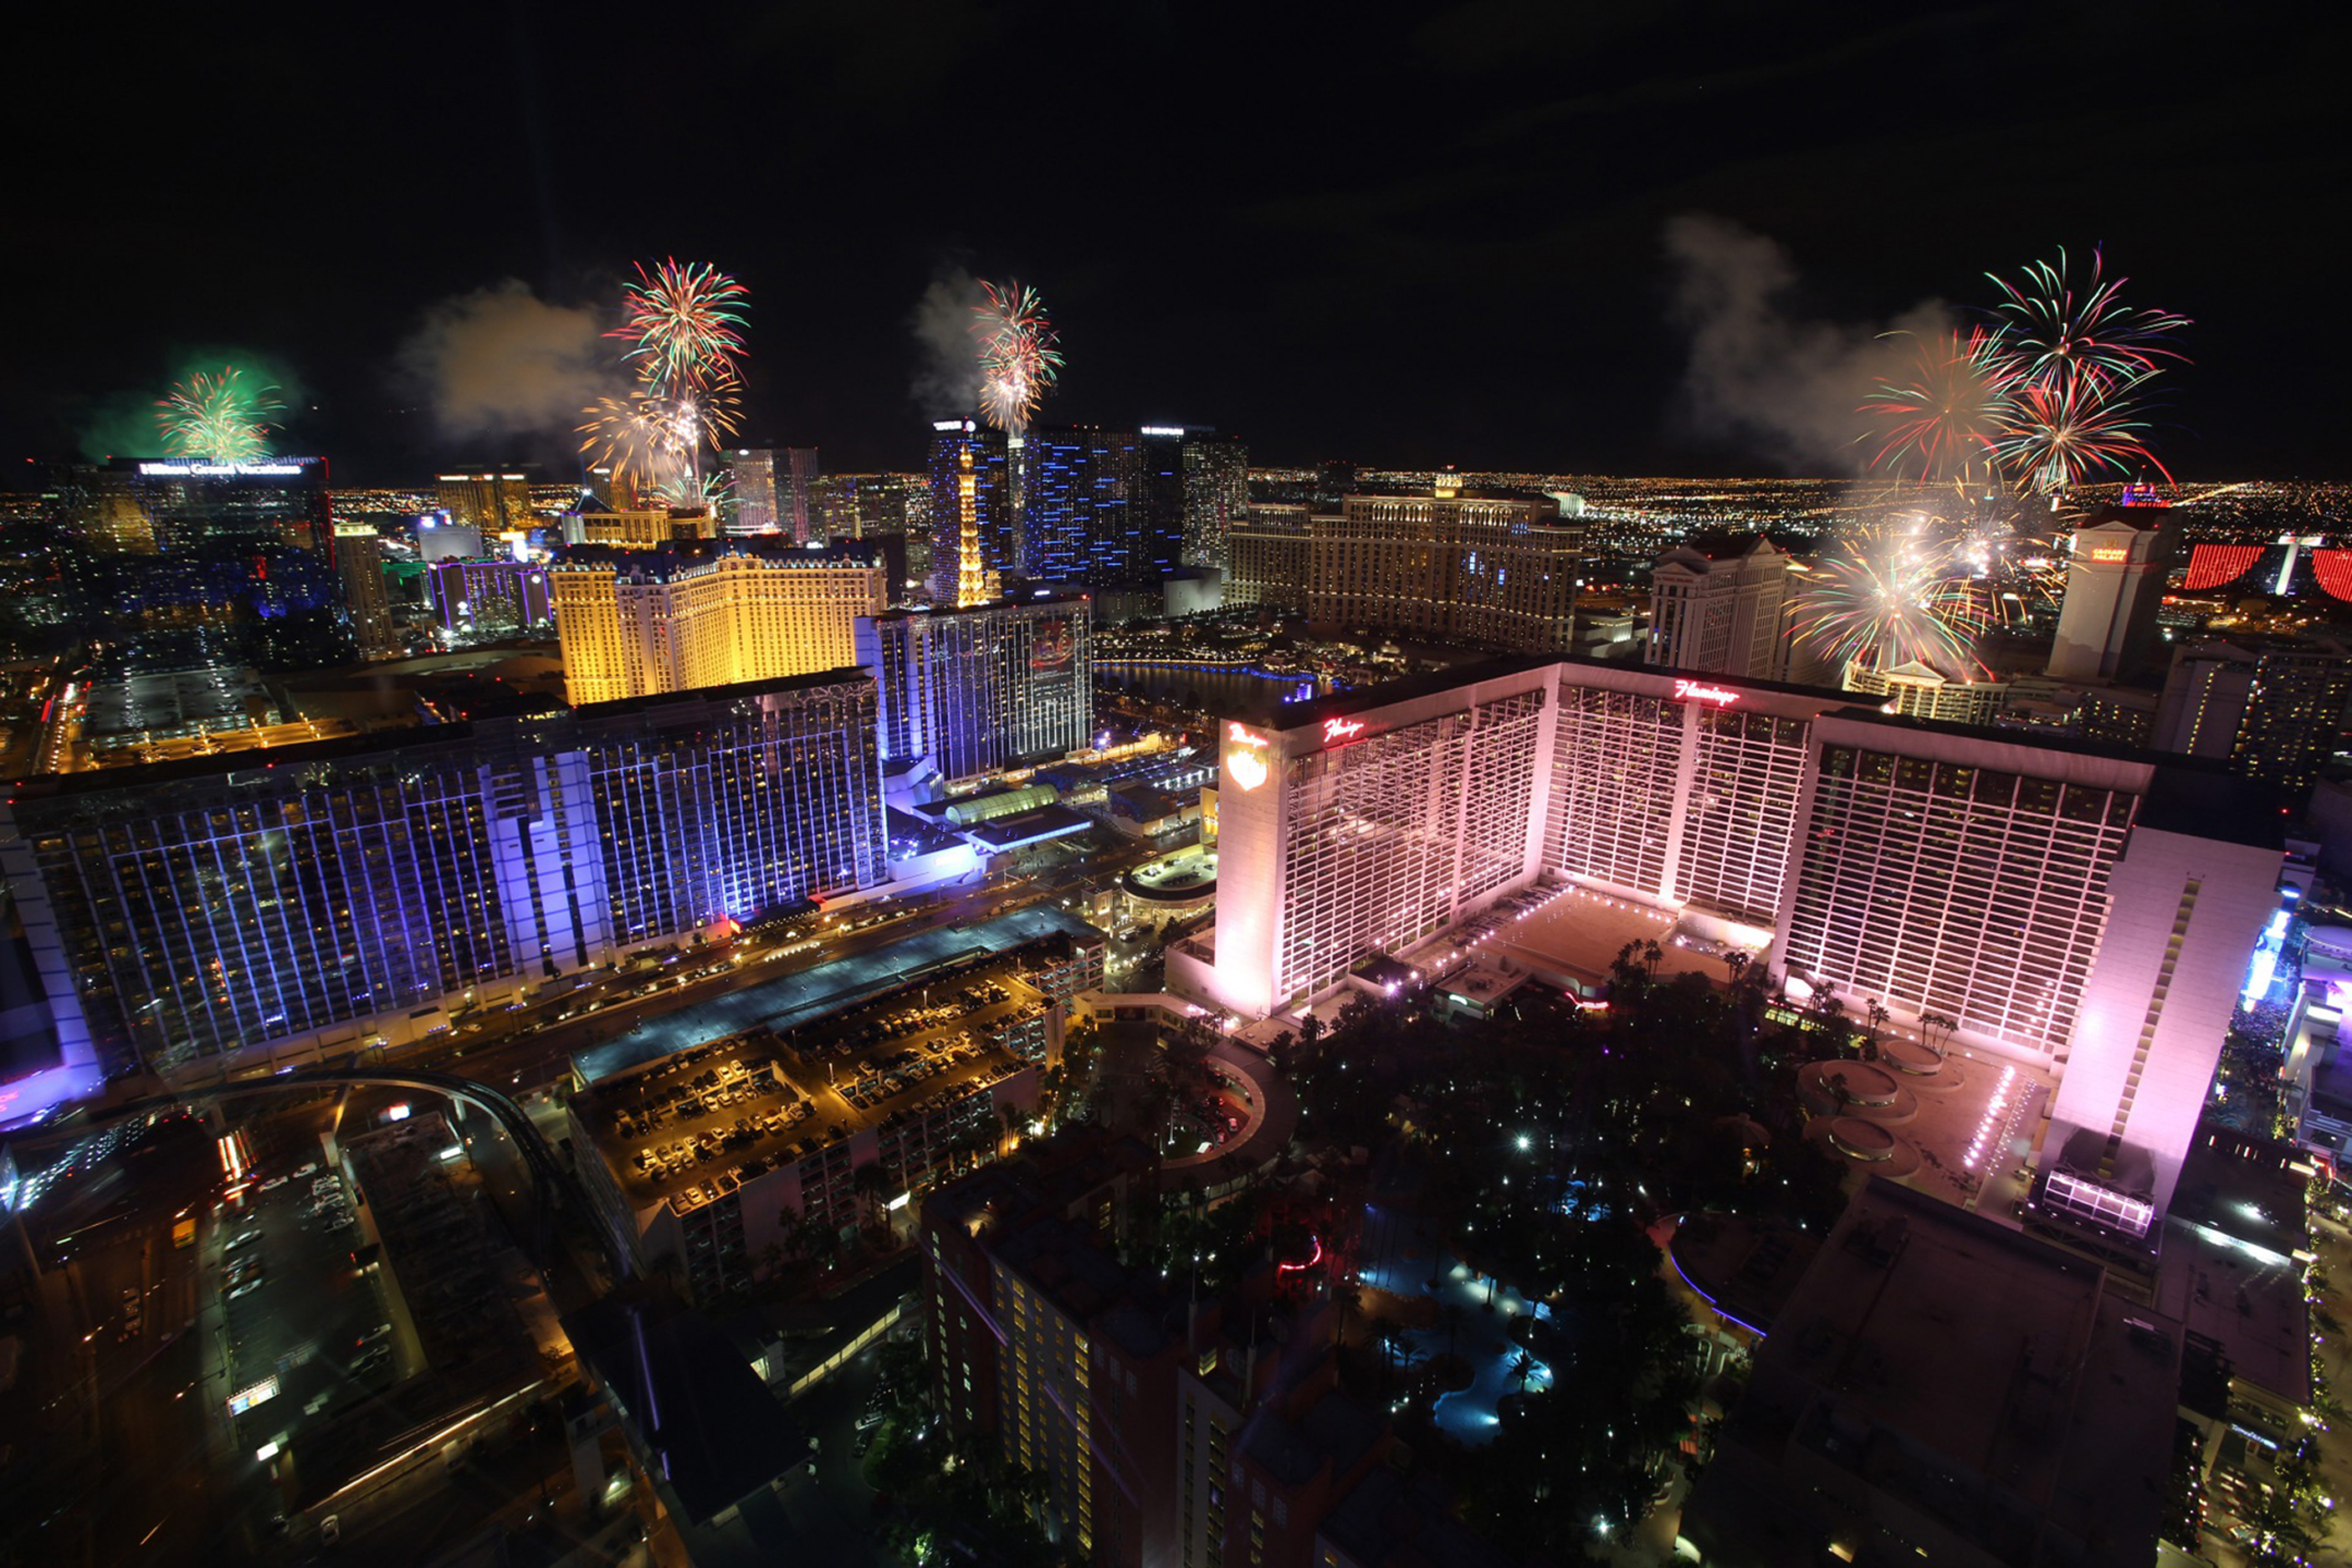 New Year's fireworks explode over Las Vegas Strip casinos in this view from the High Roller observation wheel in Las Vegas